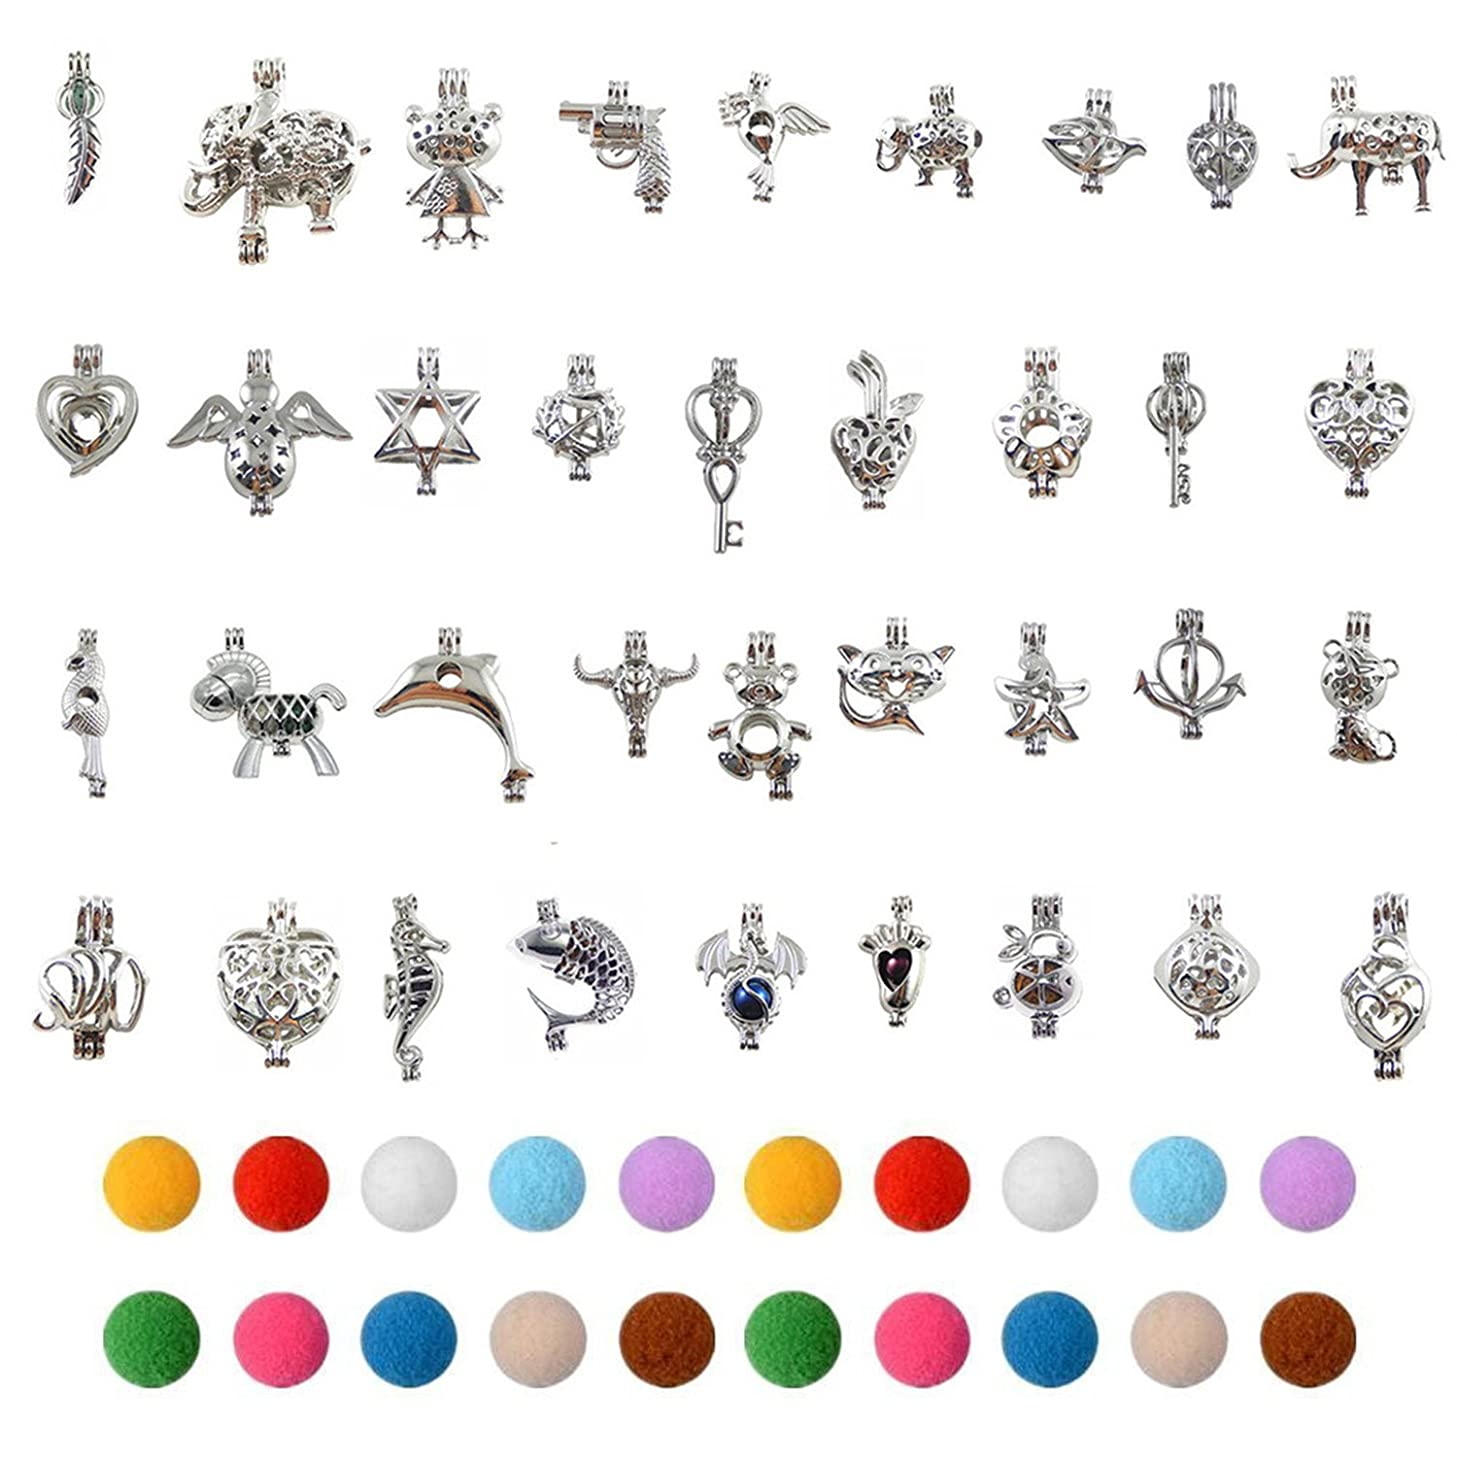 JJG 20PCS Assorted Silver Plated Pearl Bead Cage Pendant Small Lockets Charms for Aromatherapy Essential Oil Diffuser Necklace Bracelet Making